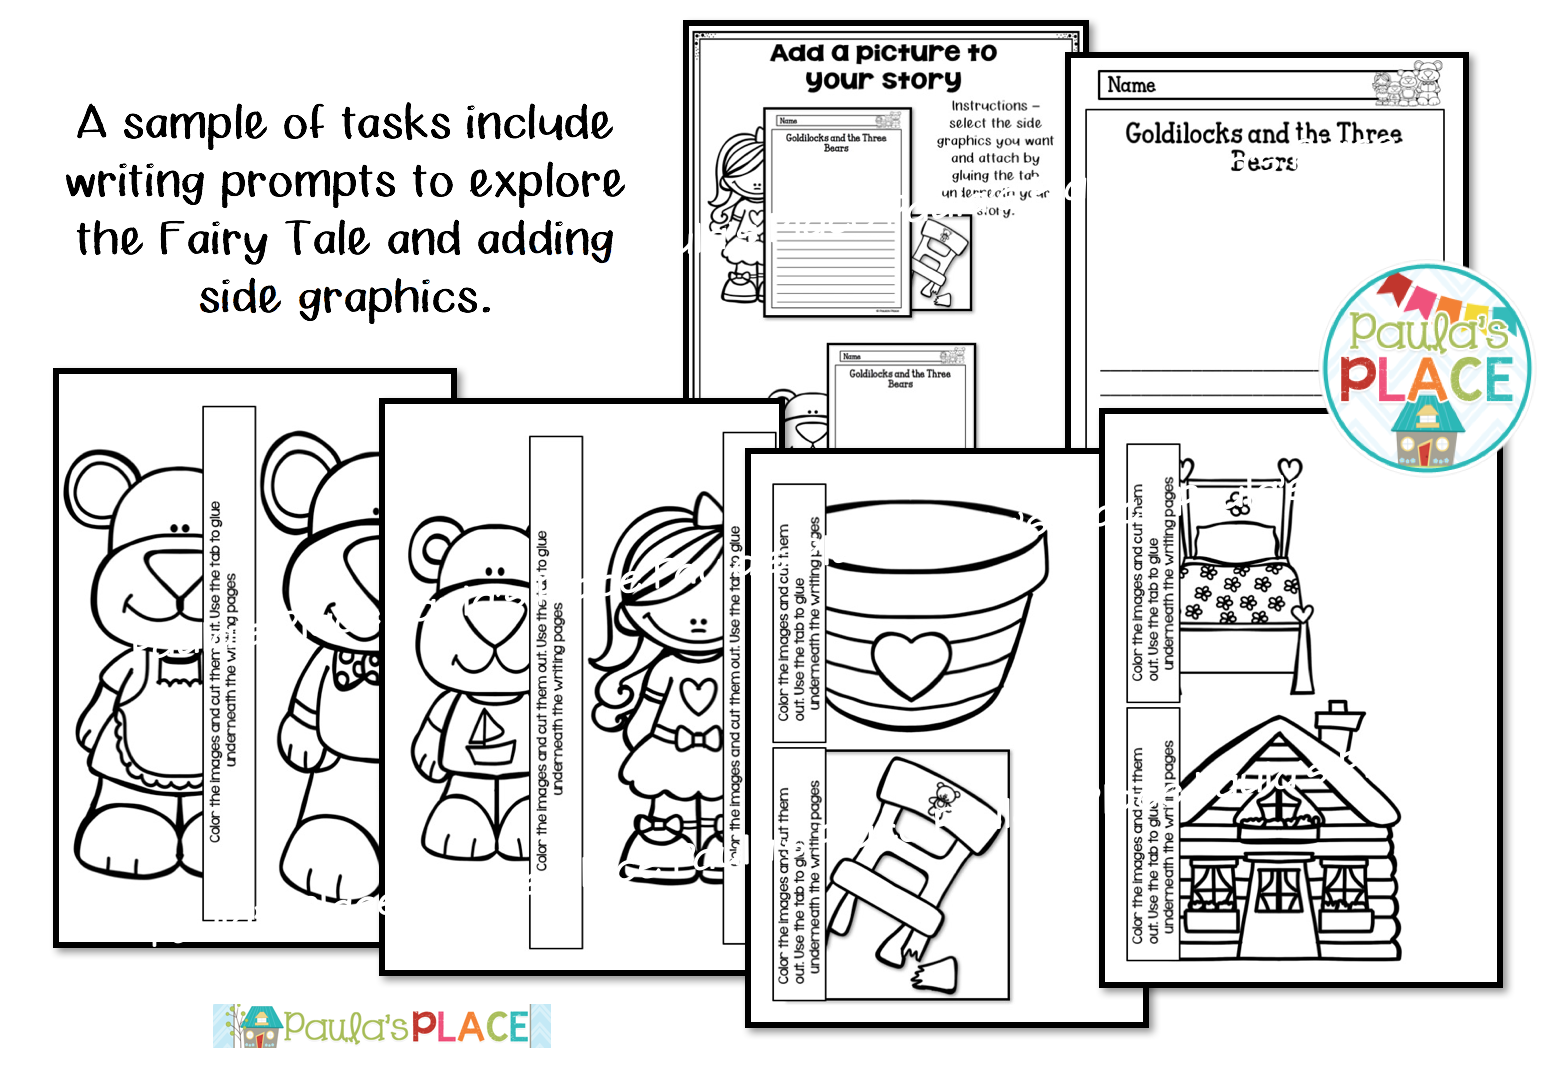 Paula's Place Teaching Resources: Goldilocks and the Three